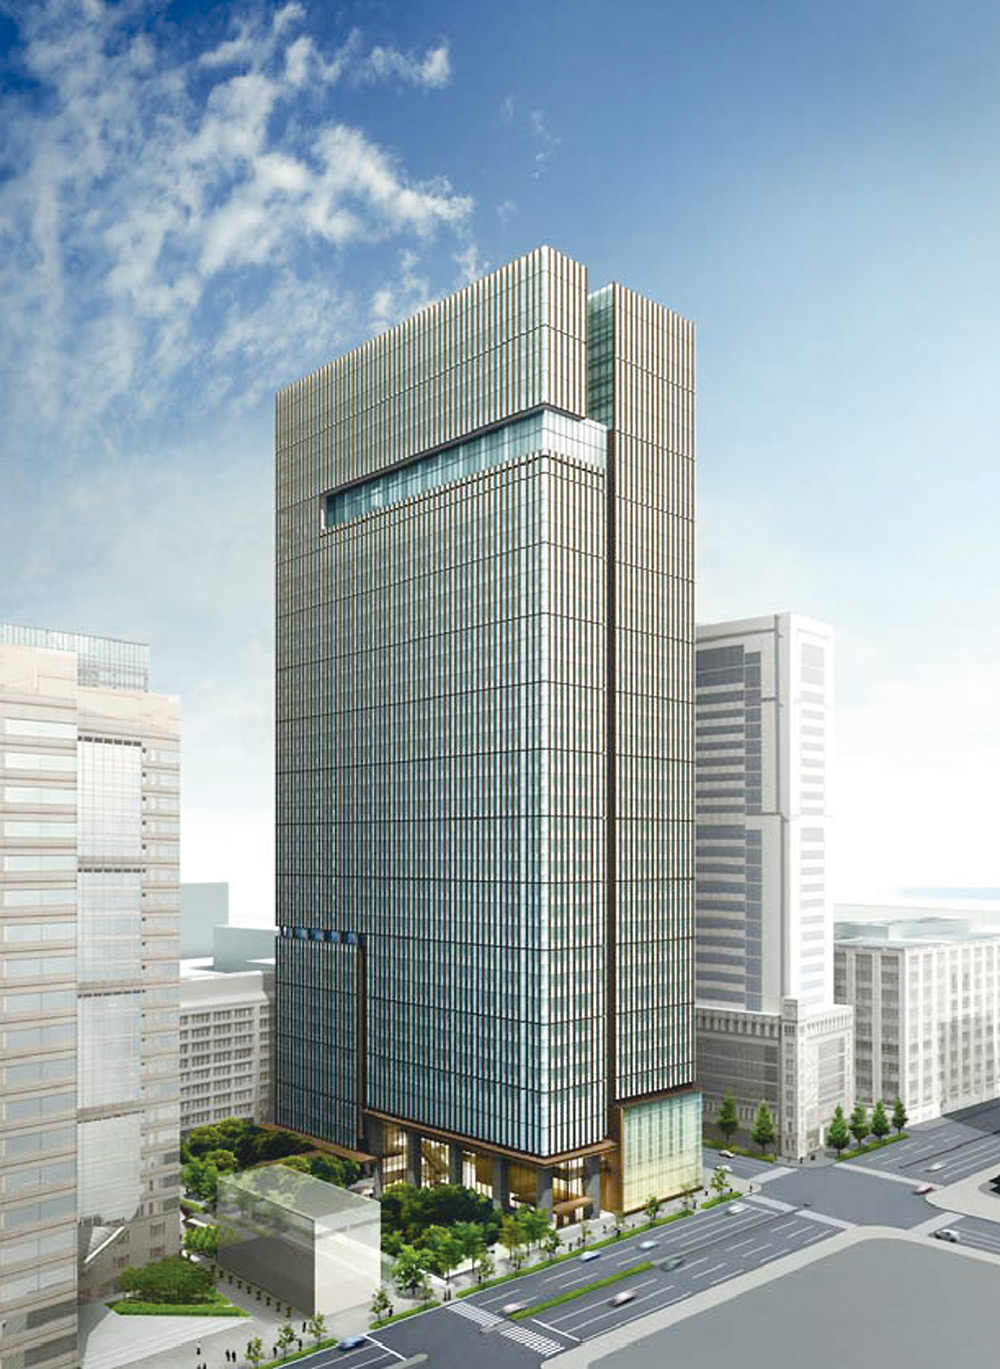 The Otemachi Tower